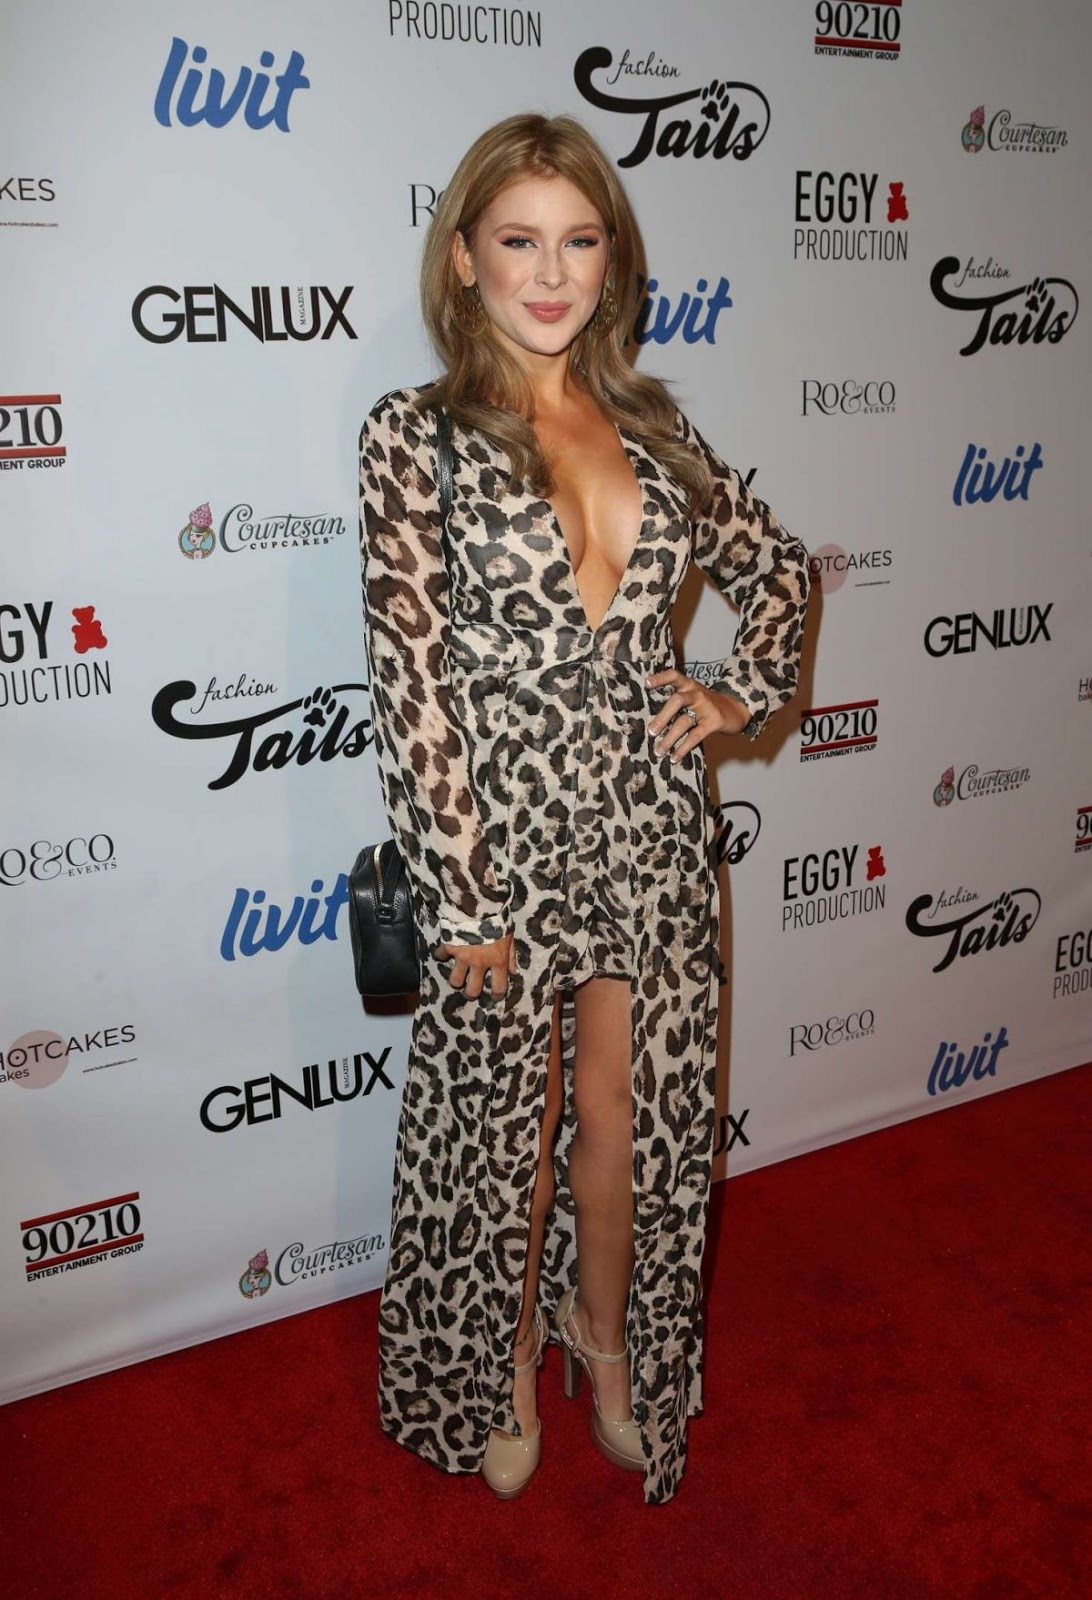 Renee Olstead at Fashion Tails Adopt